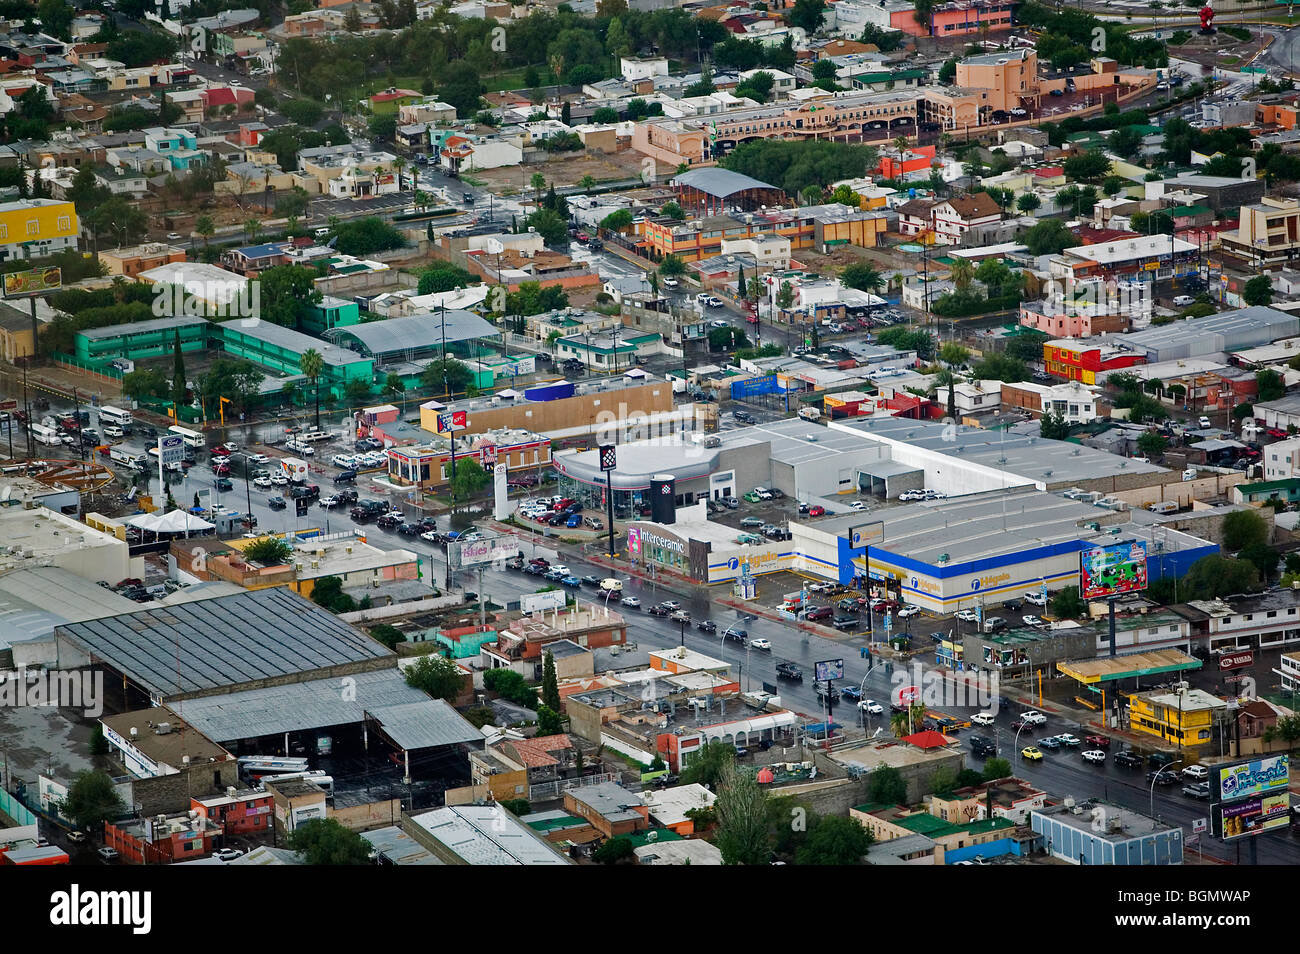 Aerial View Above Ciudad Juarez Mexico Stock Photo